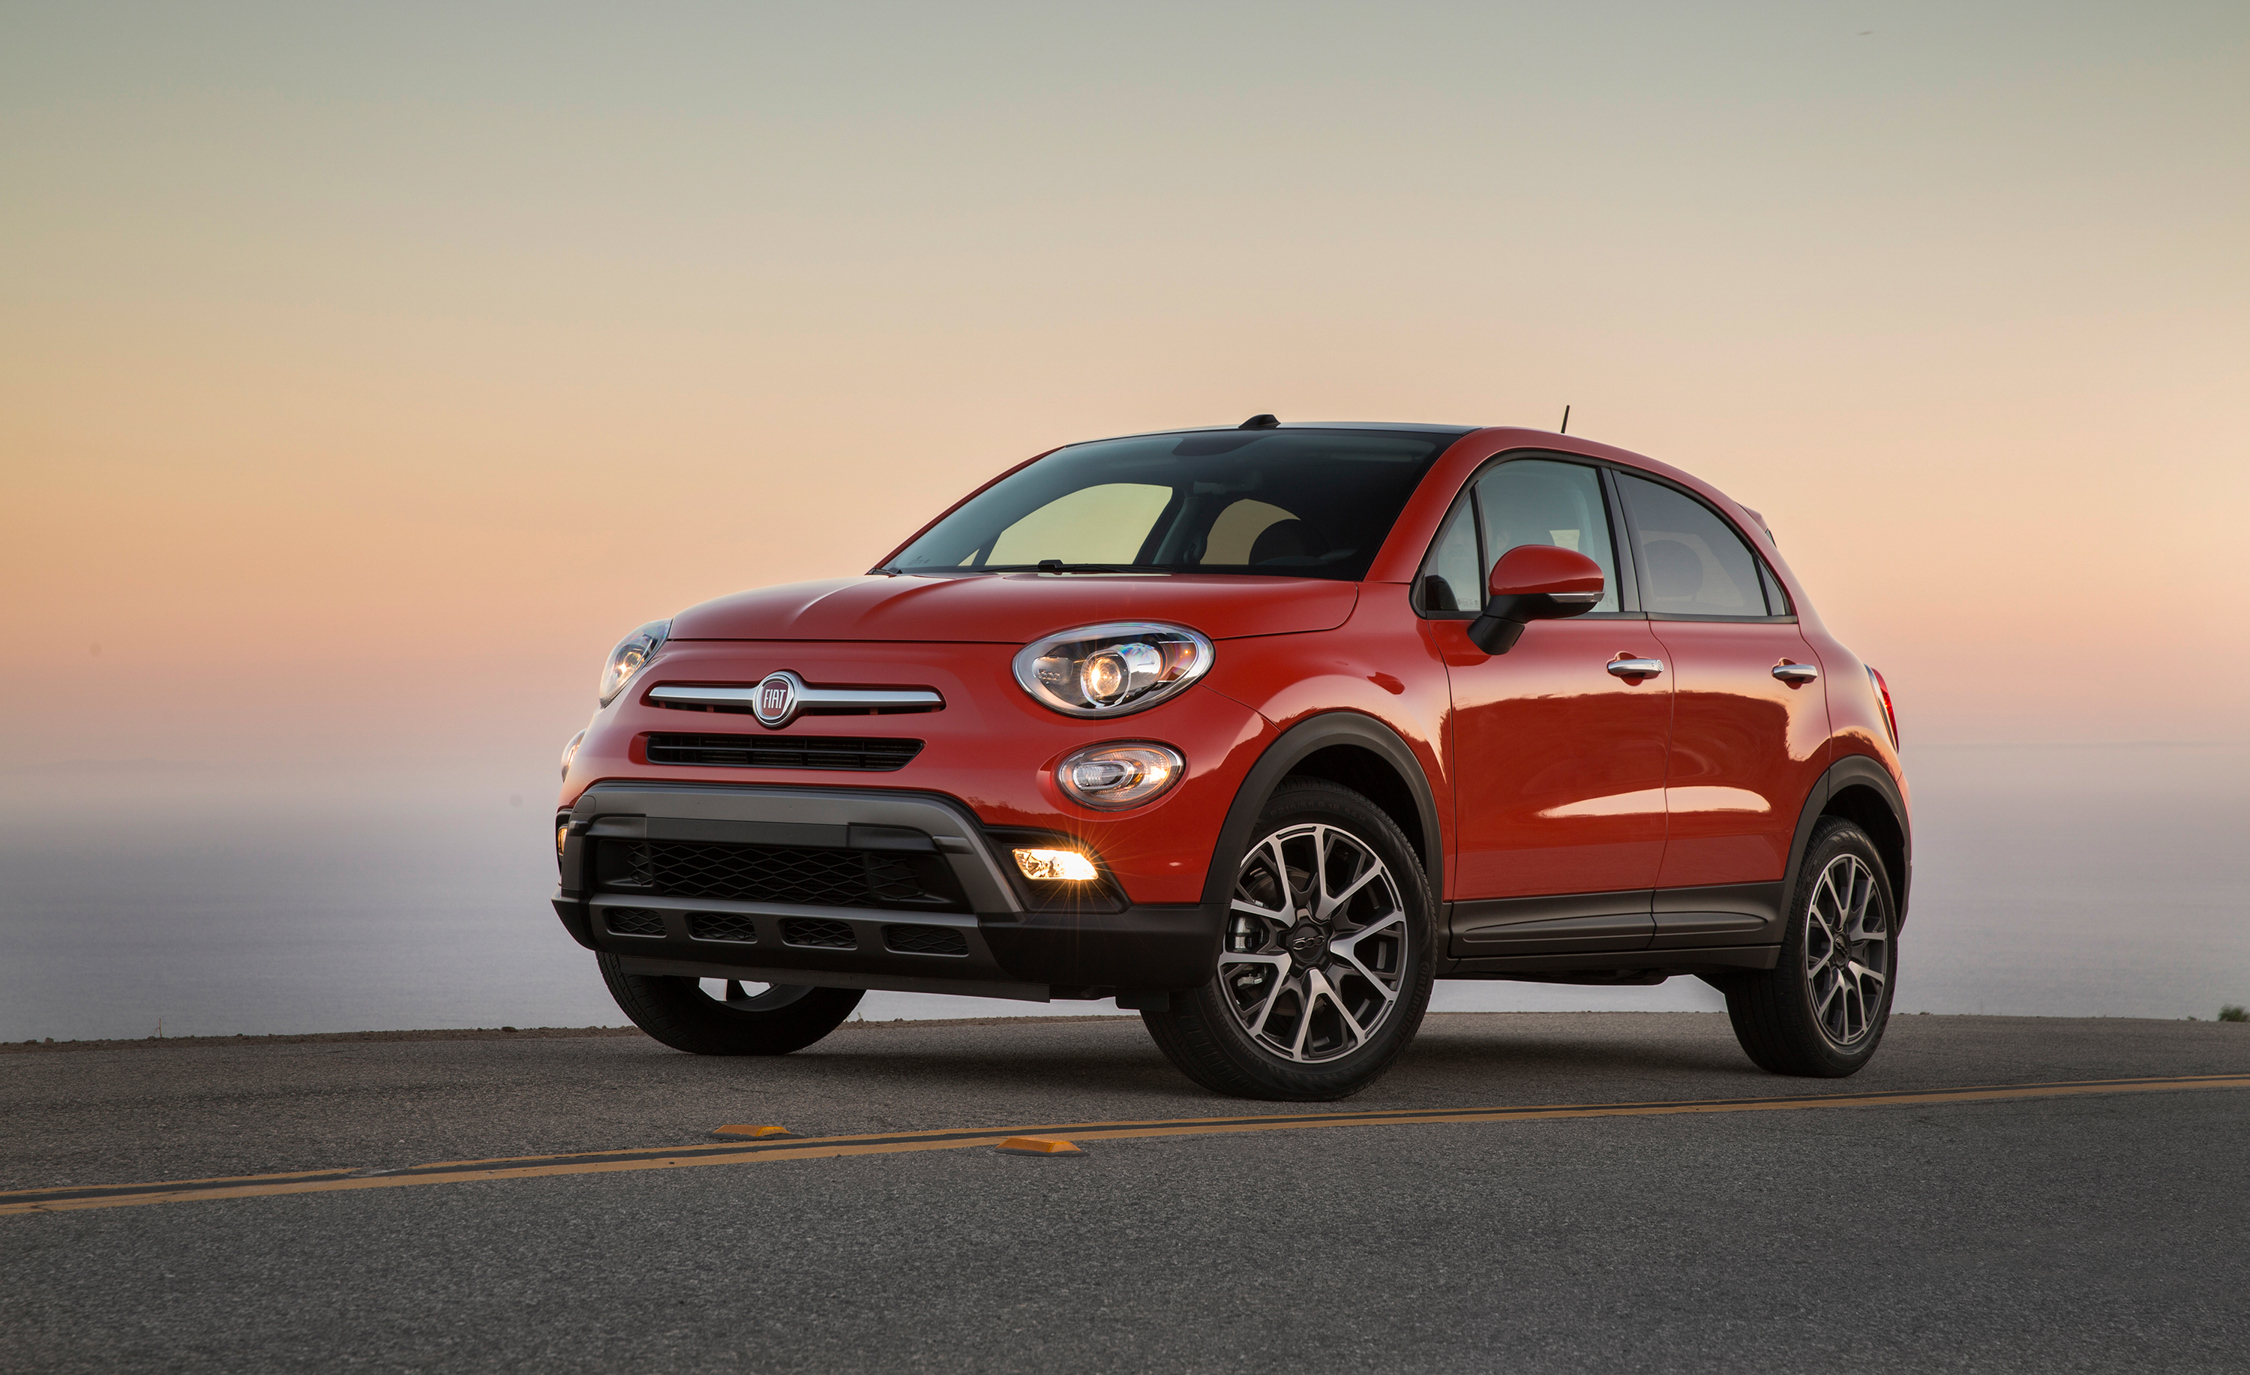 compact crossover all new 2016 fiat 500x 7641 cars performance reviews and test drive. Black Bedroom Furniture Sets. Home Design Ideas